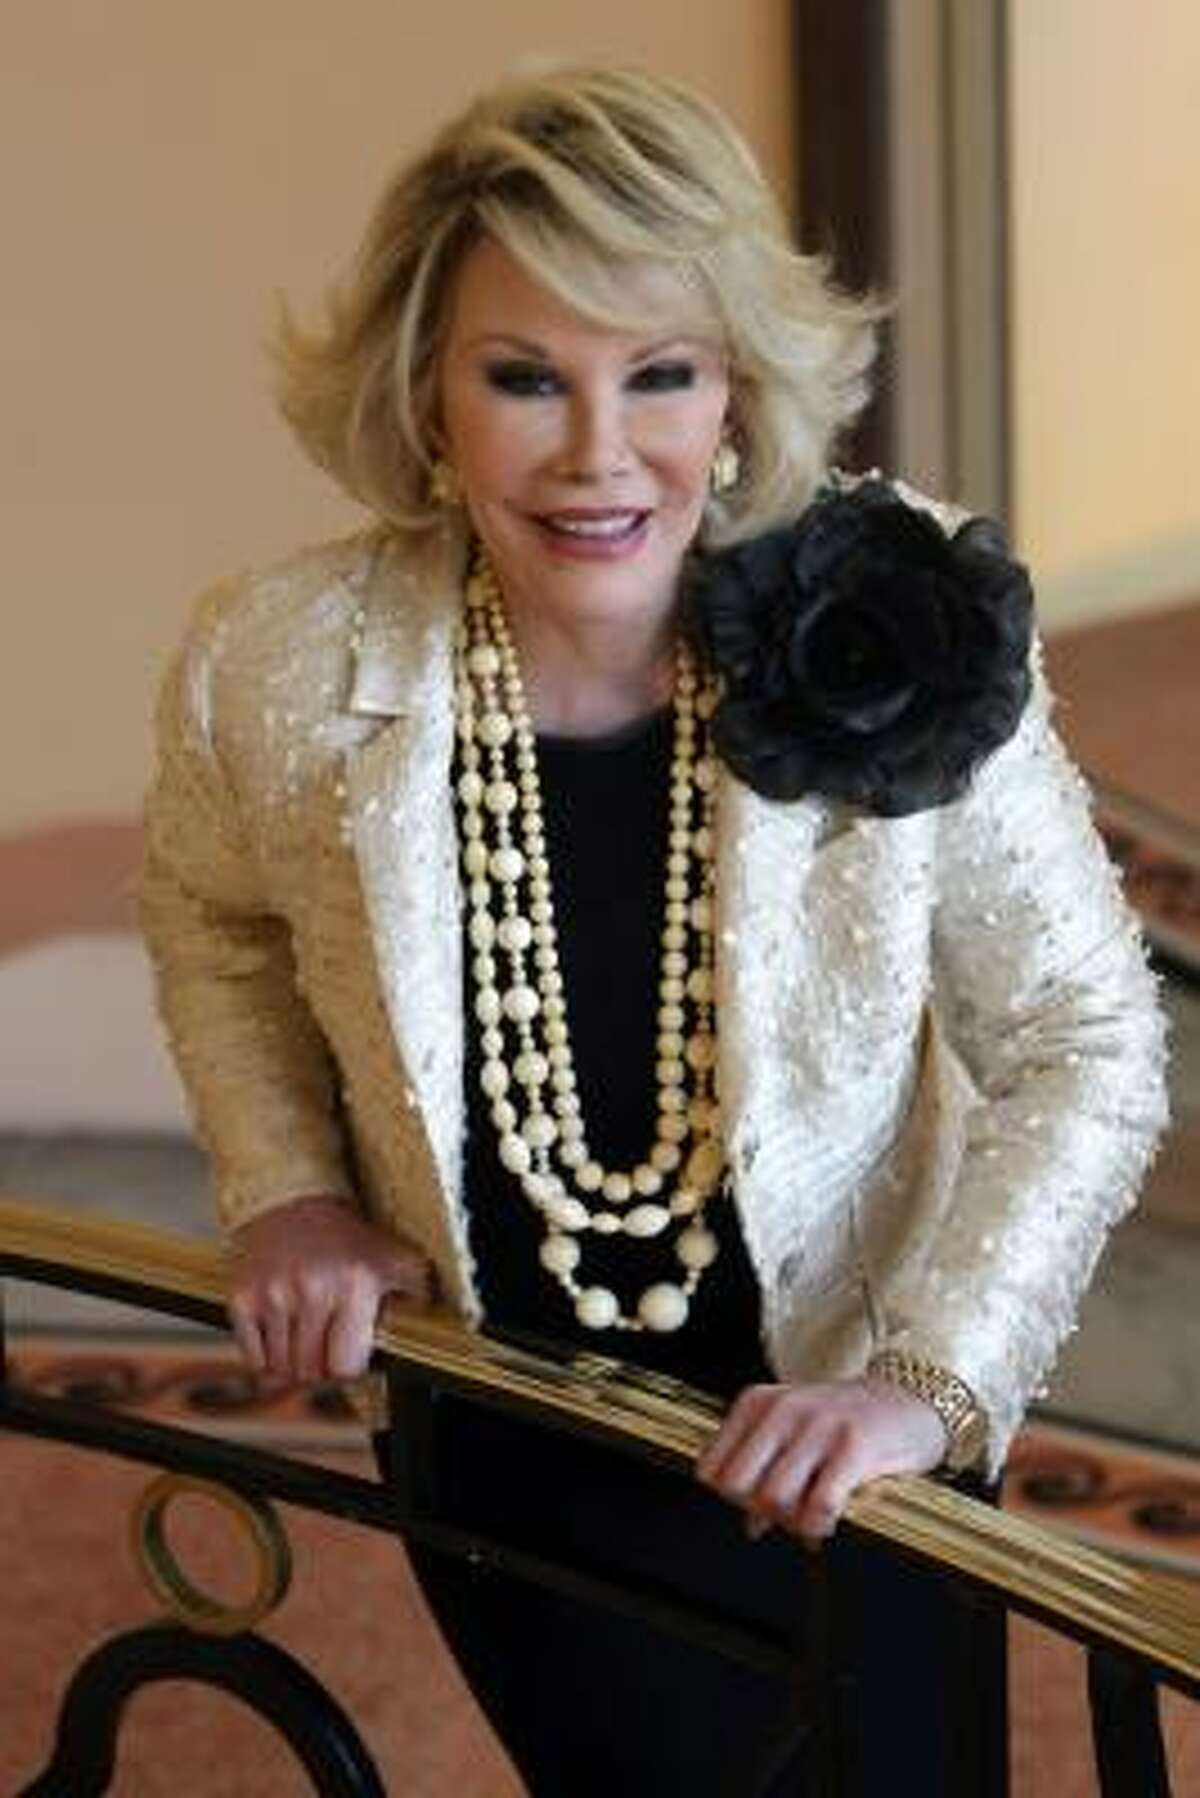 Joan Rivers, 77 The Celebrity Apprentice champ just released her documentary-memoir, Joan Rivers: A Piece of Work.